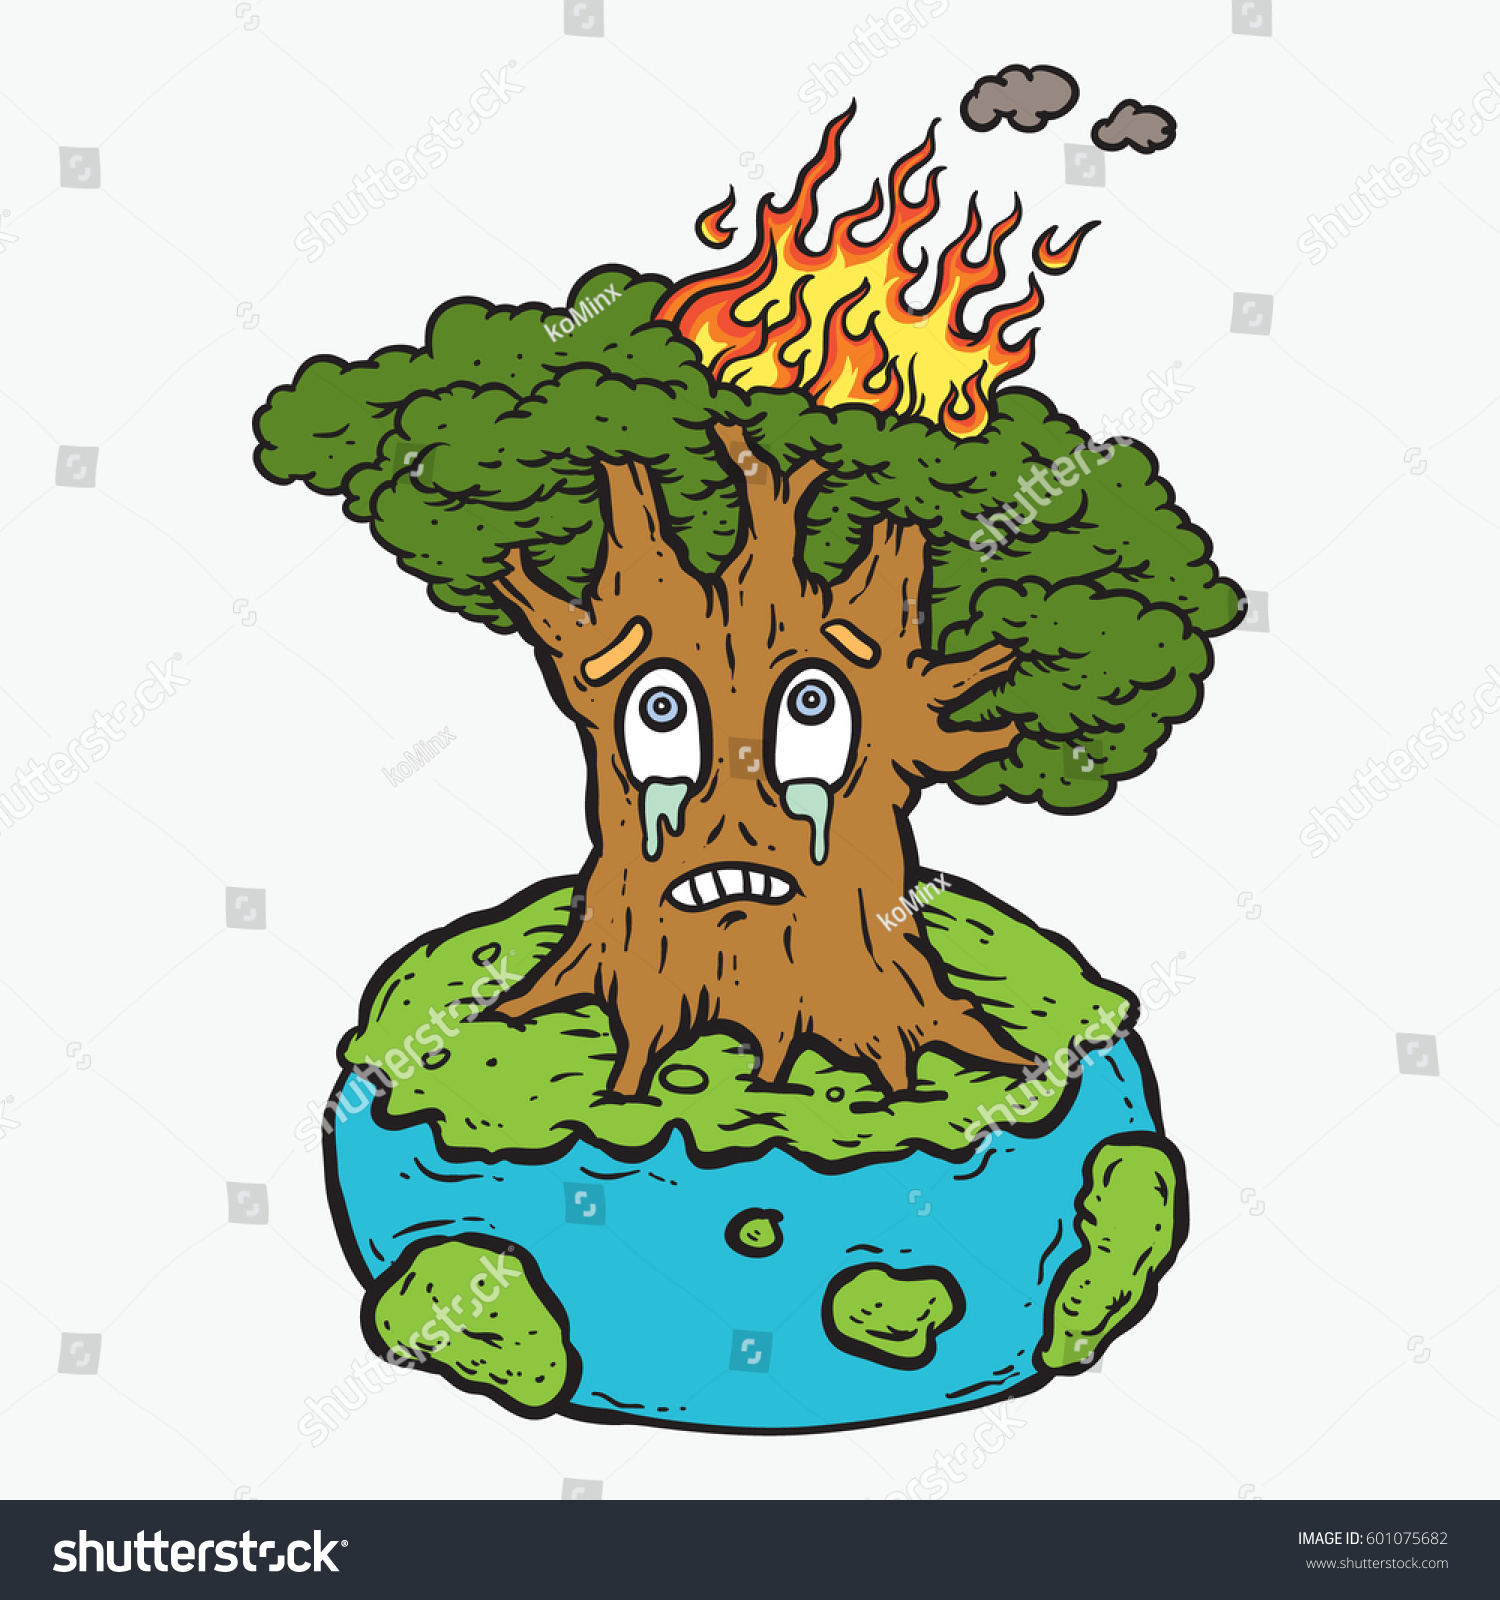 Big Tree On Fire Cartoon Drawing Stock Vector Royalty Free 601075682 Pluto's christmas tree is a 1952 mickey mouse cartoon in which pluto and mickey cut down a christmas tree that chip n' dale live in. https www shutterstock com image vector big tree on fire cartoon drawing 601075682